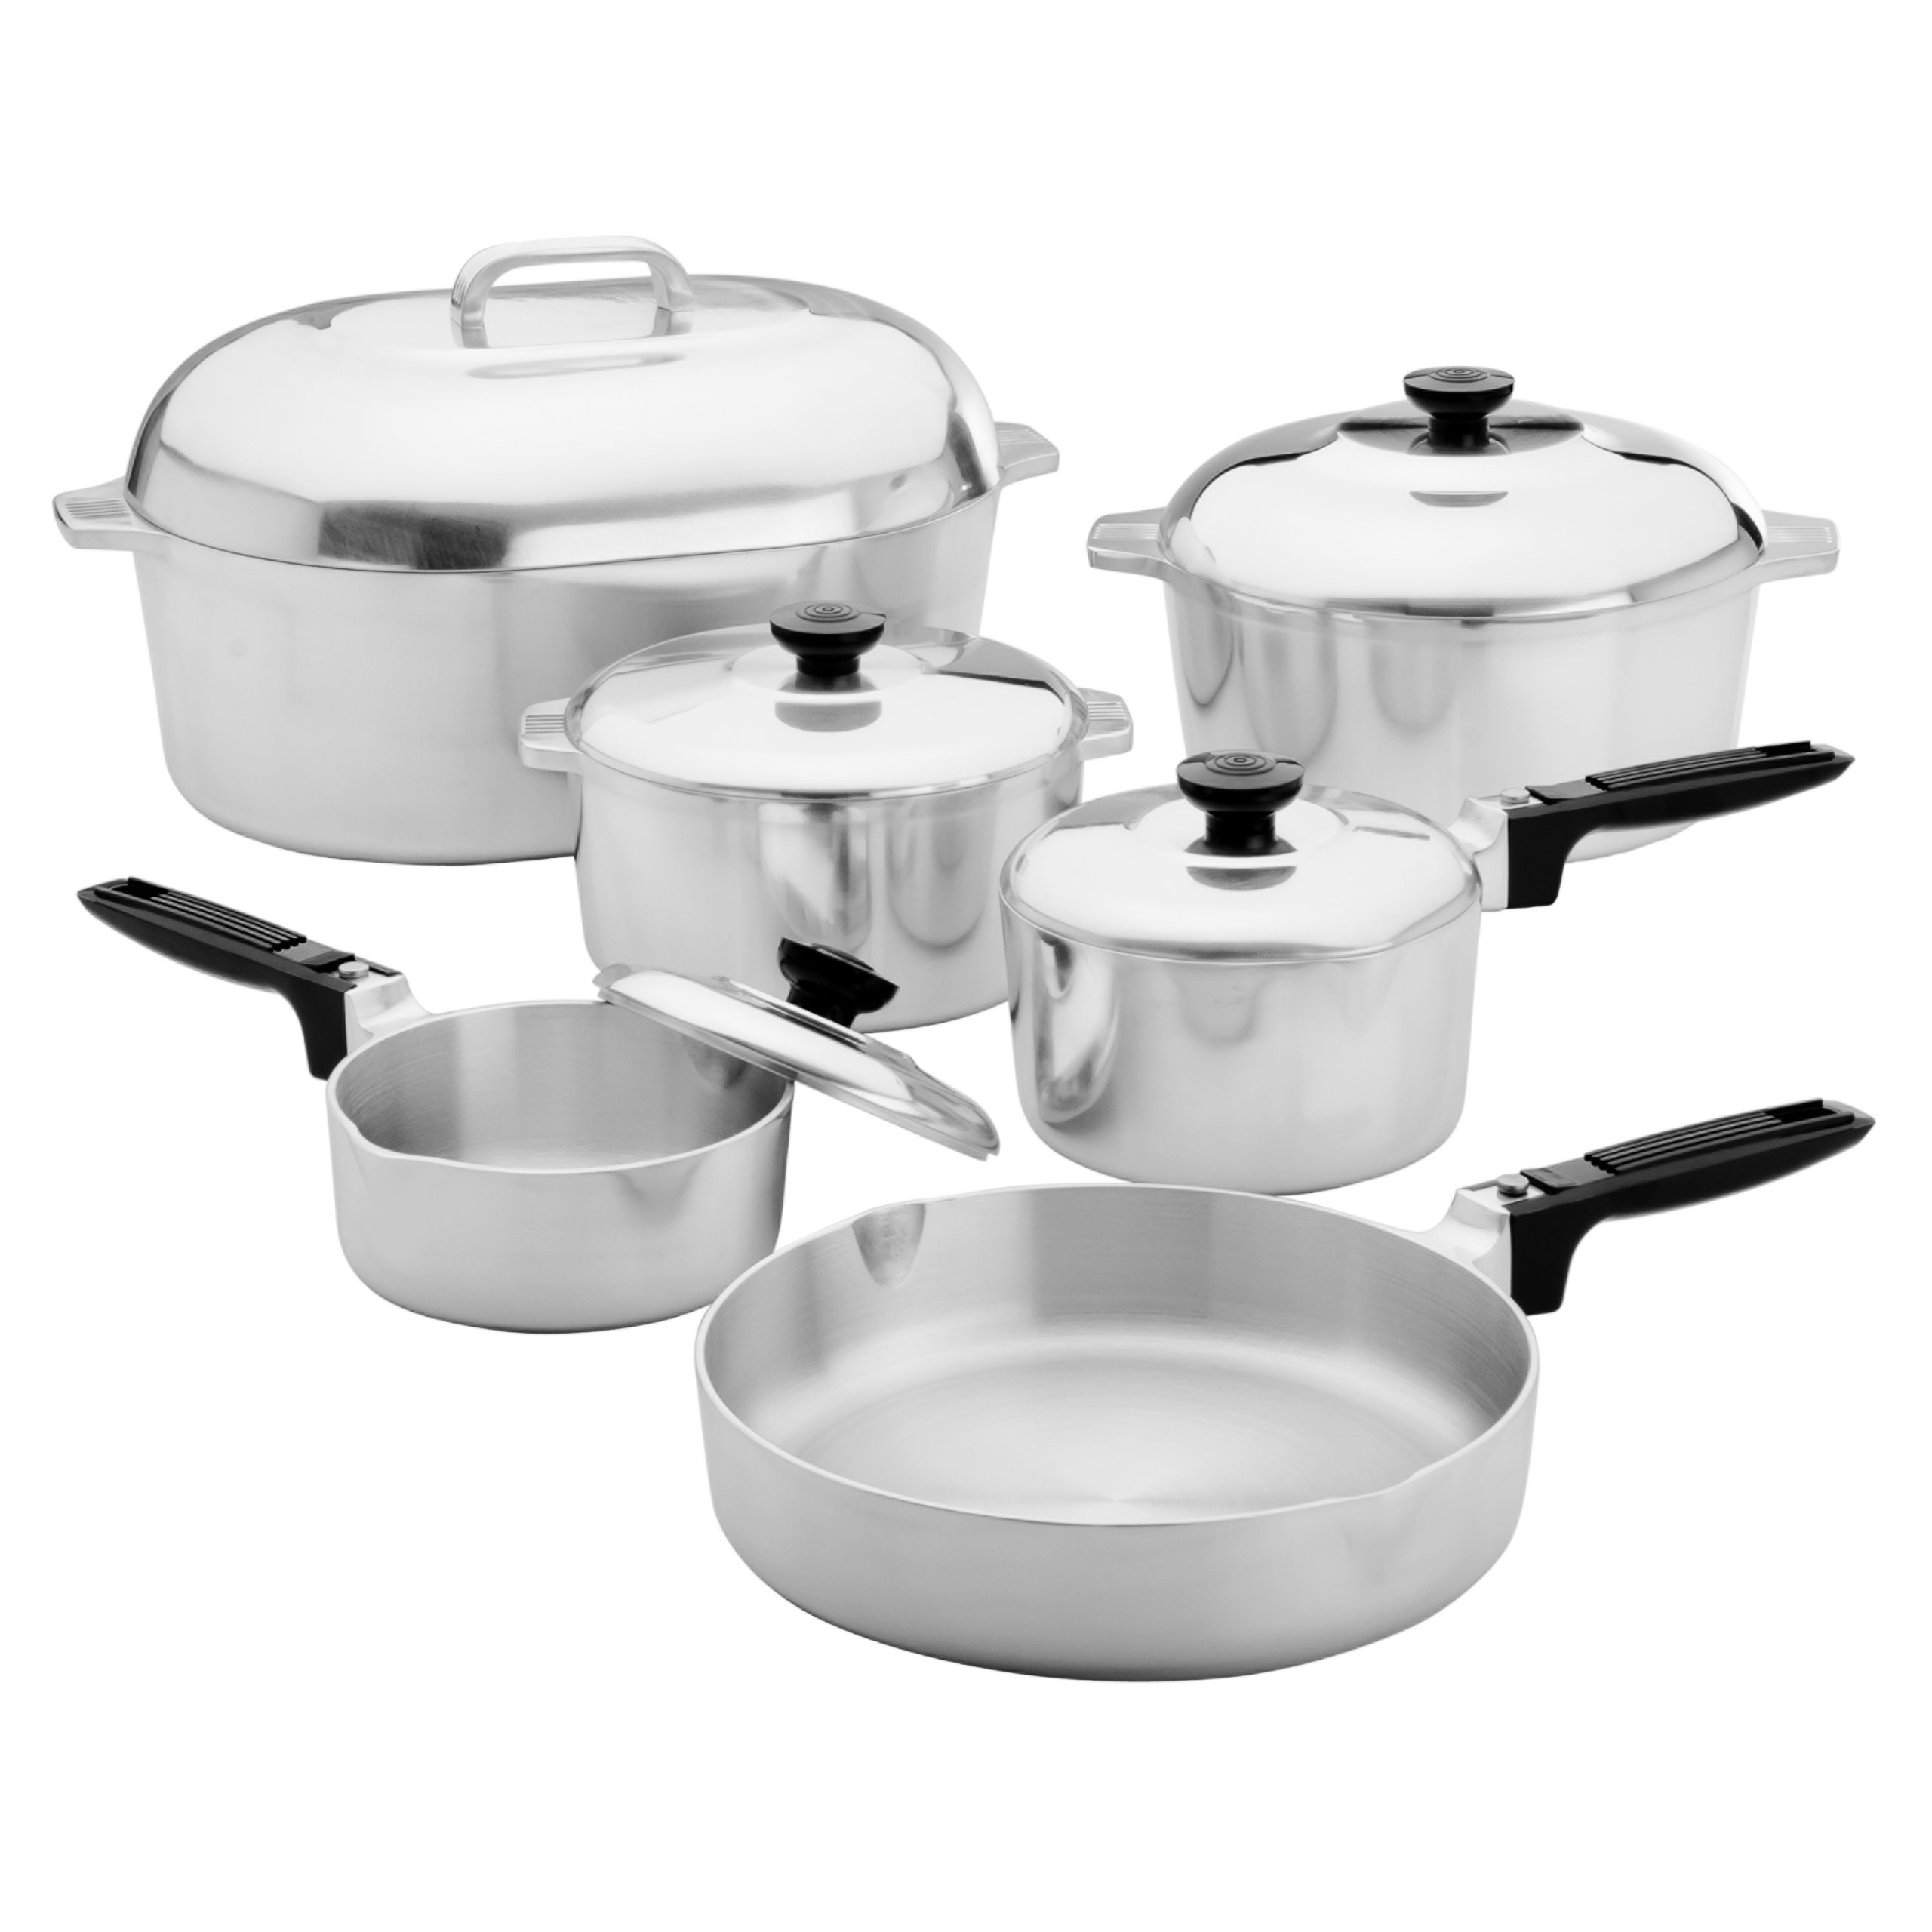 Magnalite Classic 13-Piece Cookware Set by Magnalite